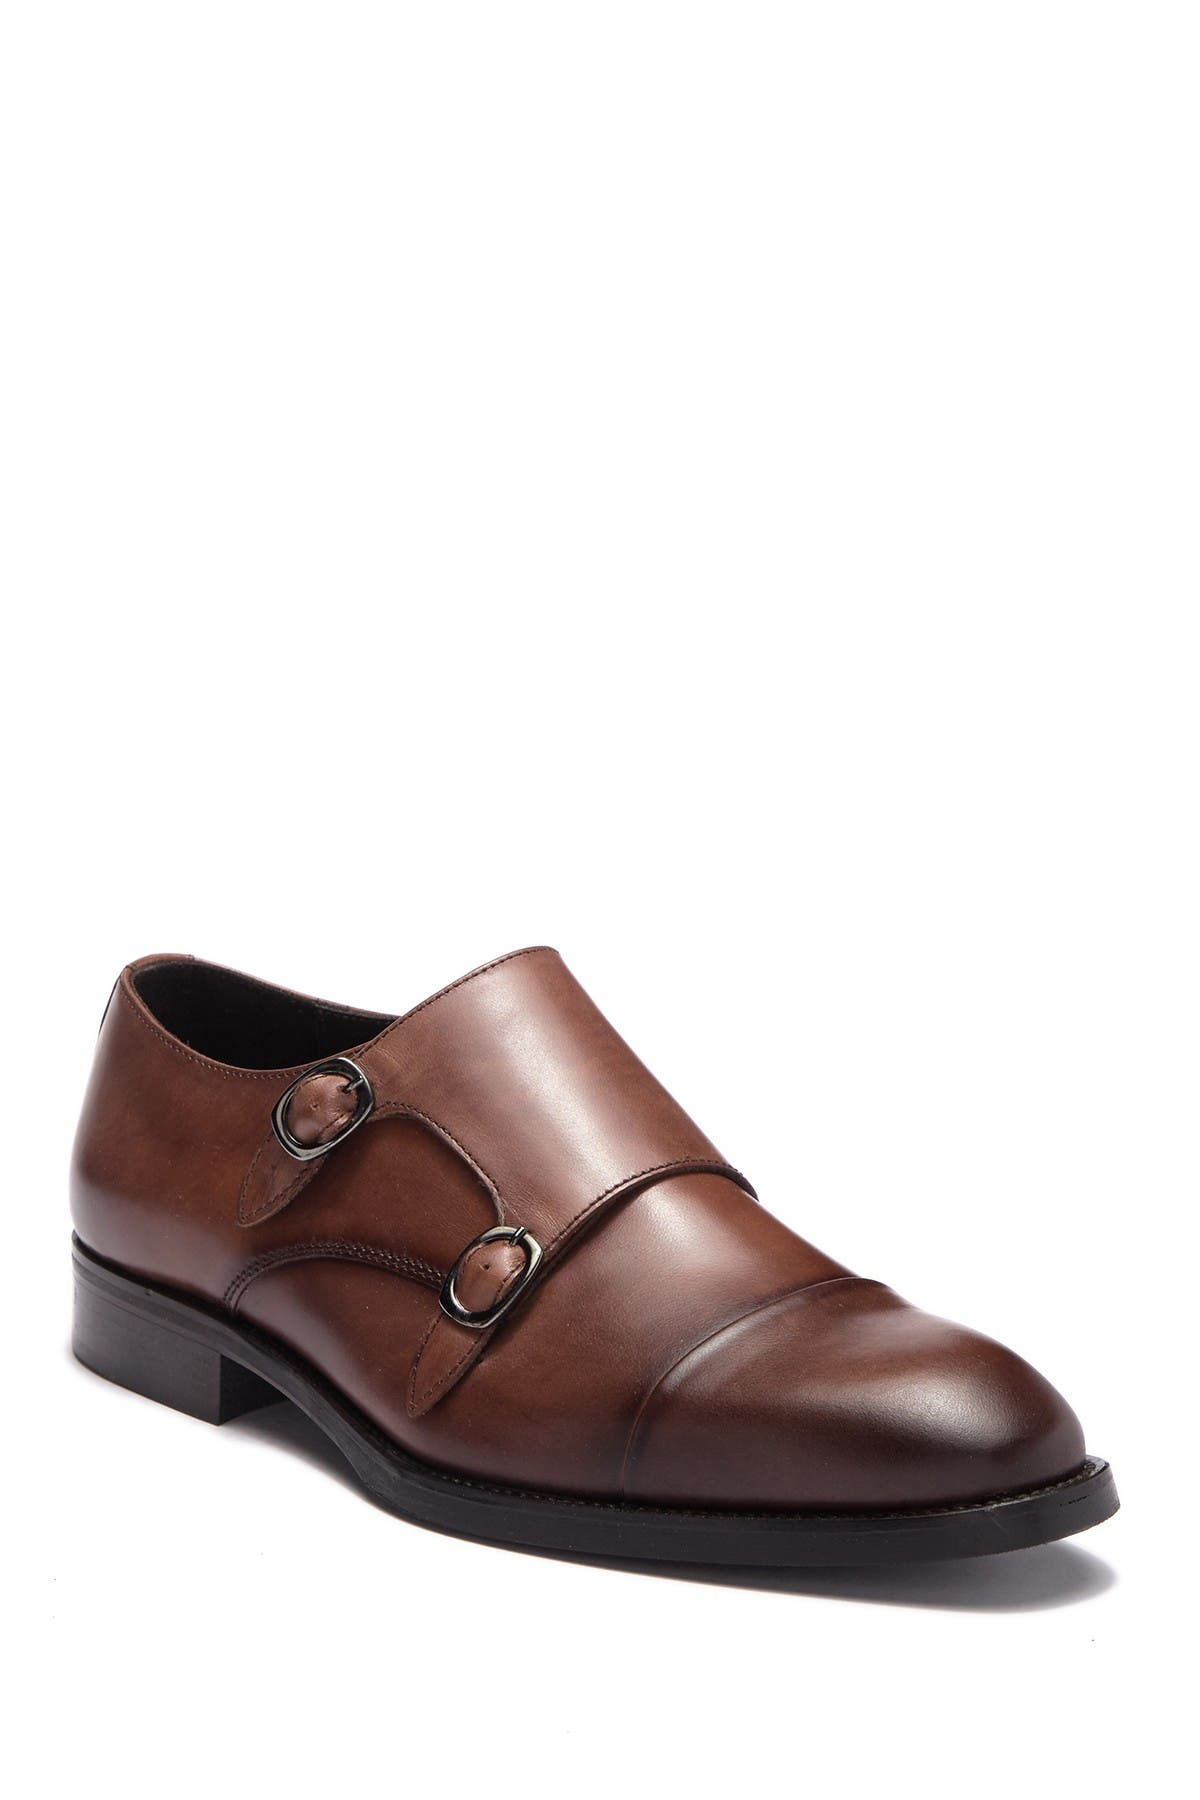 Barata Leather Double Monk Strap Loafer